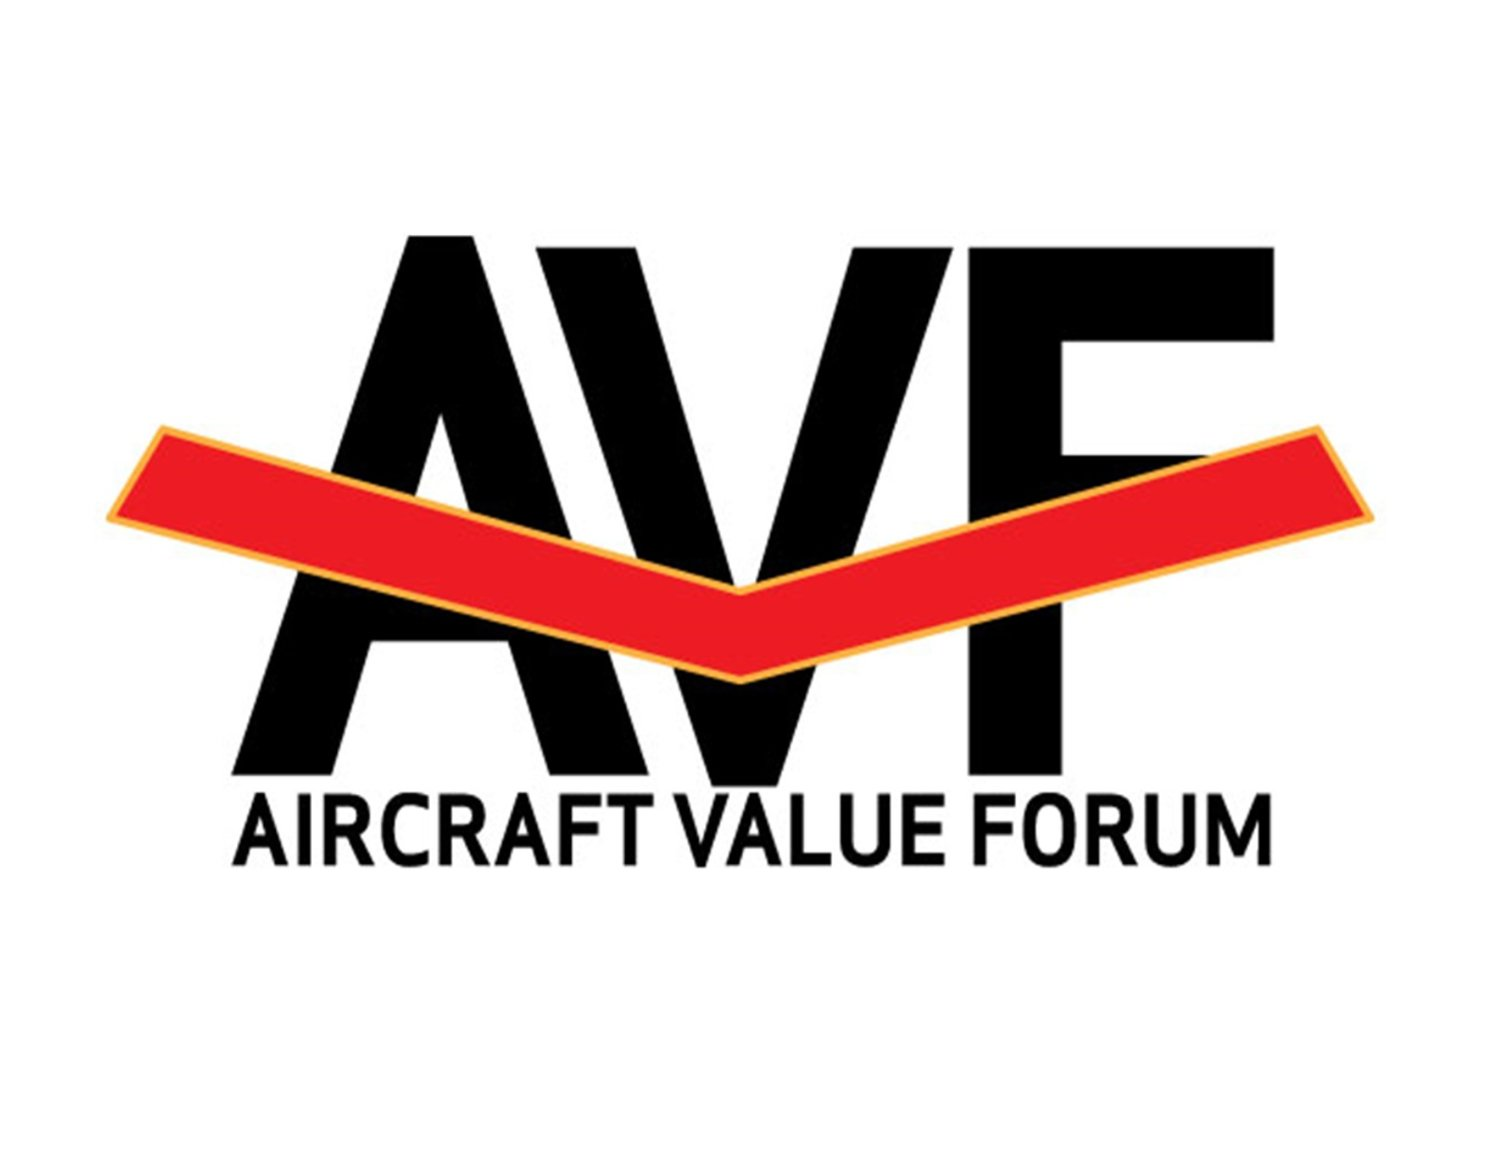 Aircraft Value Forum